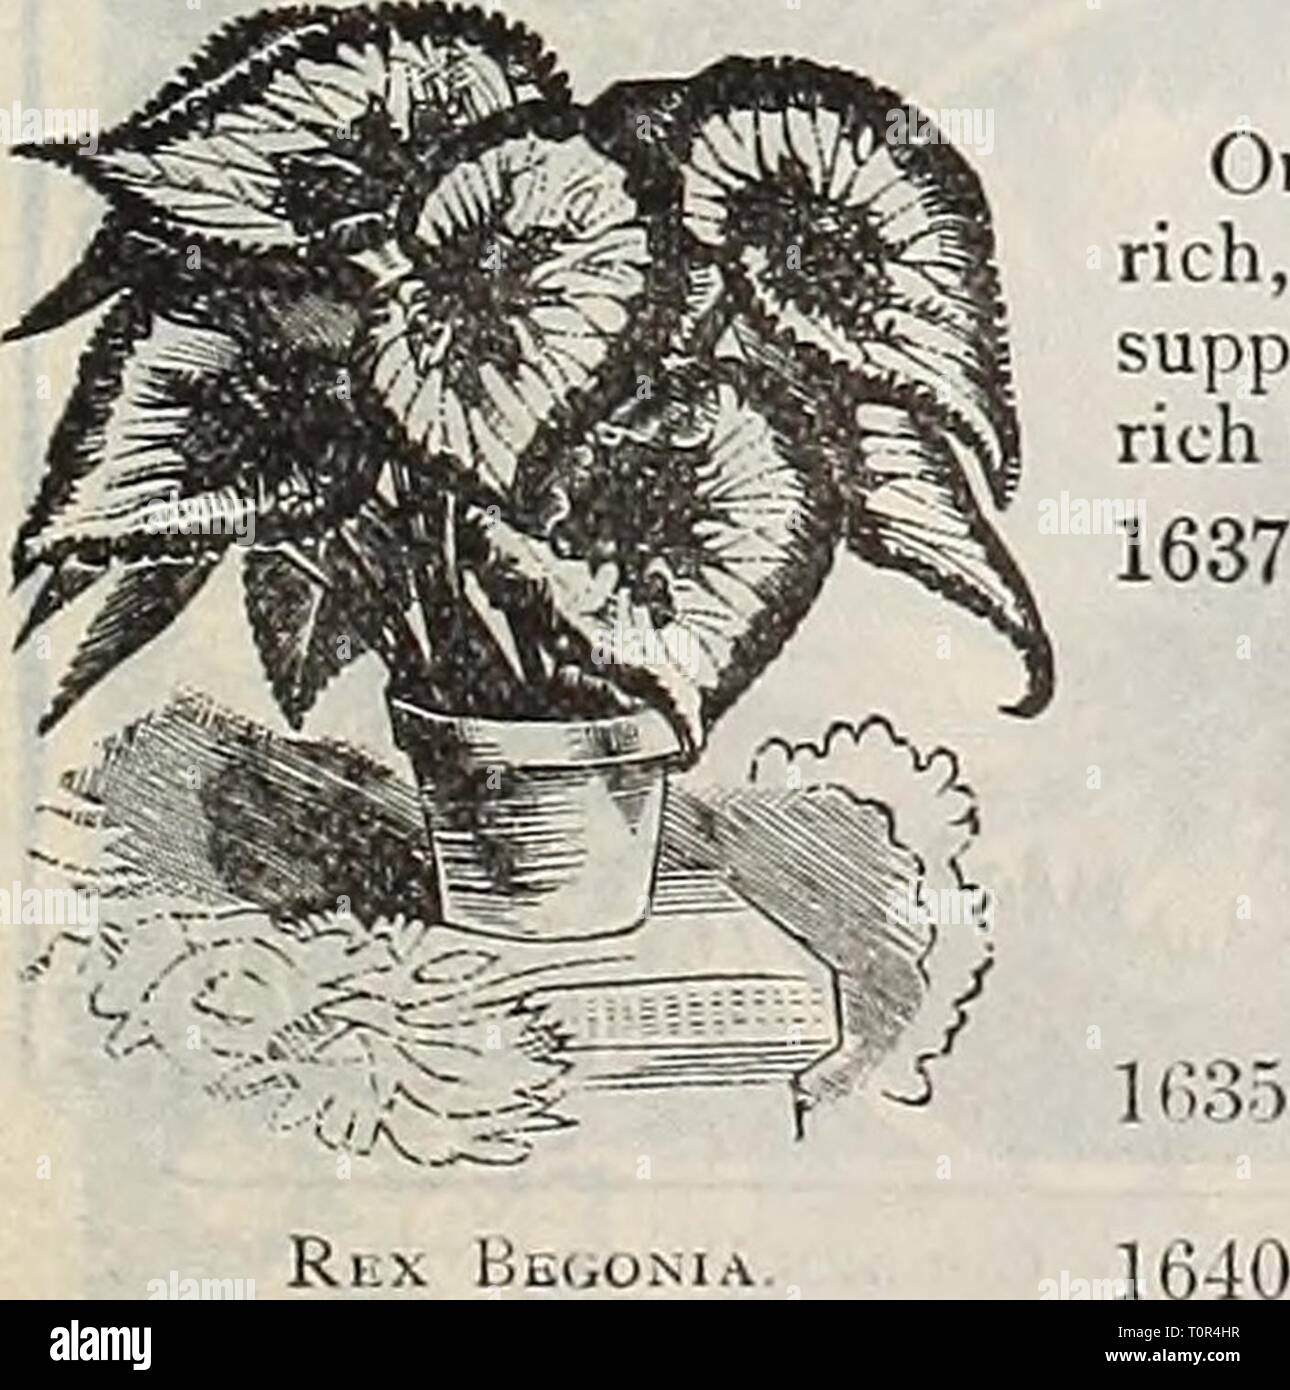 Dreer's 1901 garden calendar (1901) Dreer's 1901 garden calendar  dreers1901garden1901henr Year: 1901  BRYONOPSIS. 1641 Laciniosa. A beautiful annu.d climber of the gourd species, with ivy- like pale green foliage and showy fruit, first green striped w hite, turning, when ripe, to brighi scarlet striped white ; 10 feet. (See cut.) Brovvallia Spfxiosa Major. 0LD=FASH10NED FLOWERS. We offer collections of seed of both annual and per- ennial old-fashioned flowers on page 58. For index of Common or English names of Flowers, see page 100. ORNAMENTAI^-I^EAVED BEGONIA. per pkt 1566 Hex Hybrids. Beaut - Stock Image